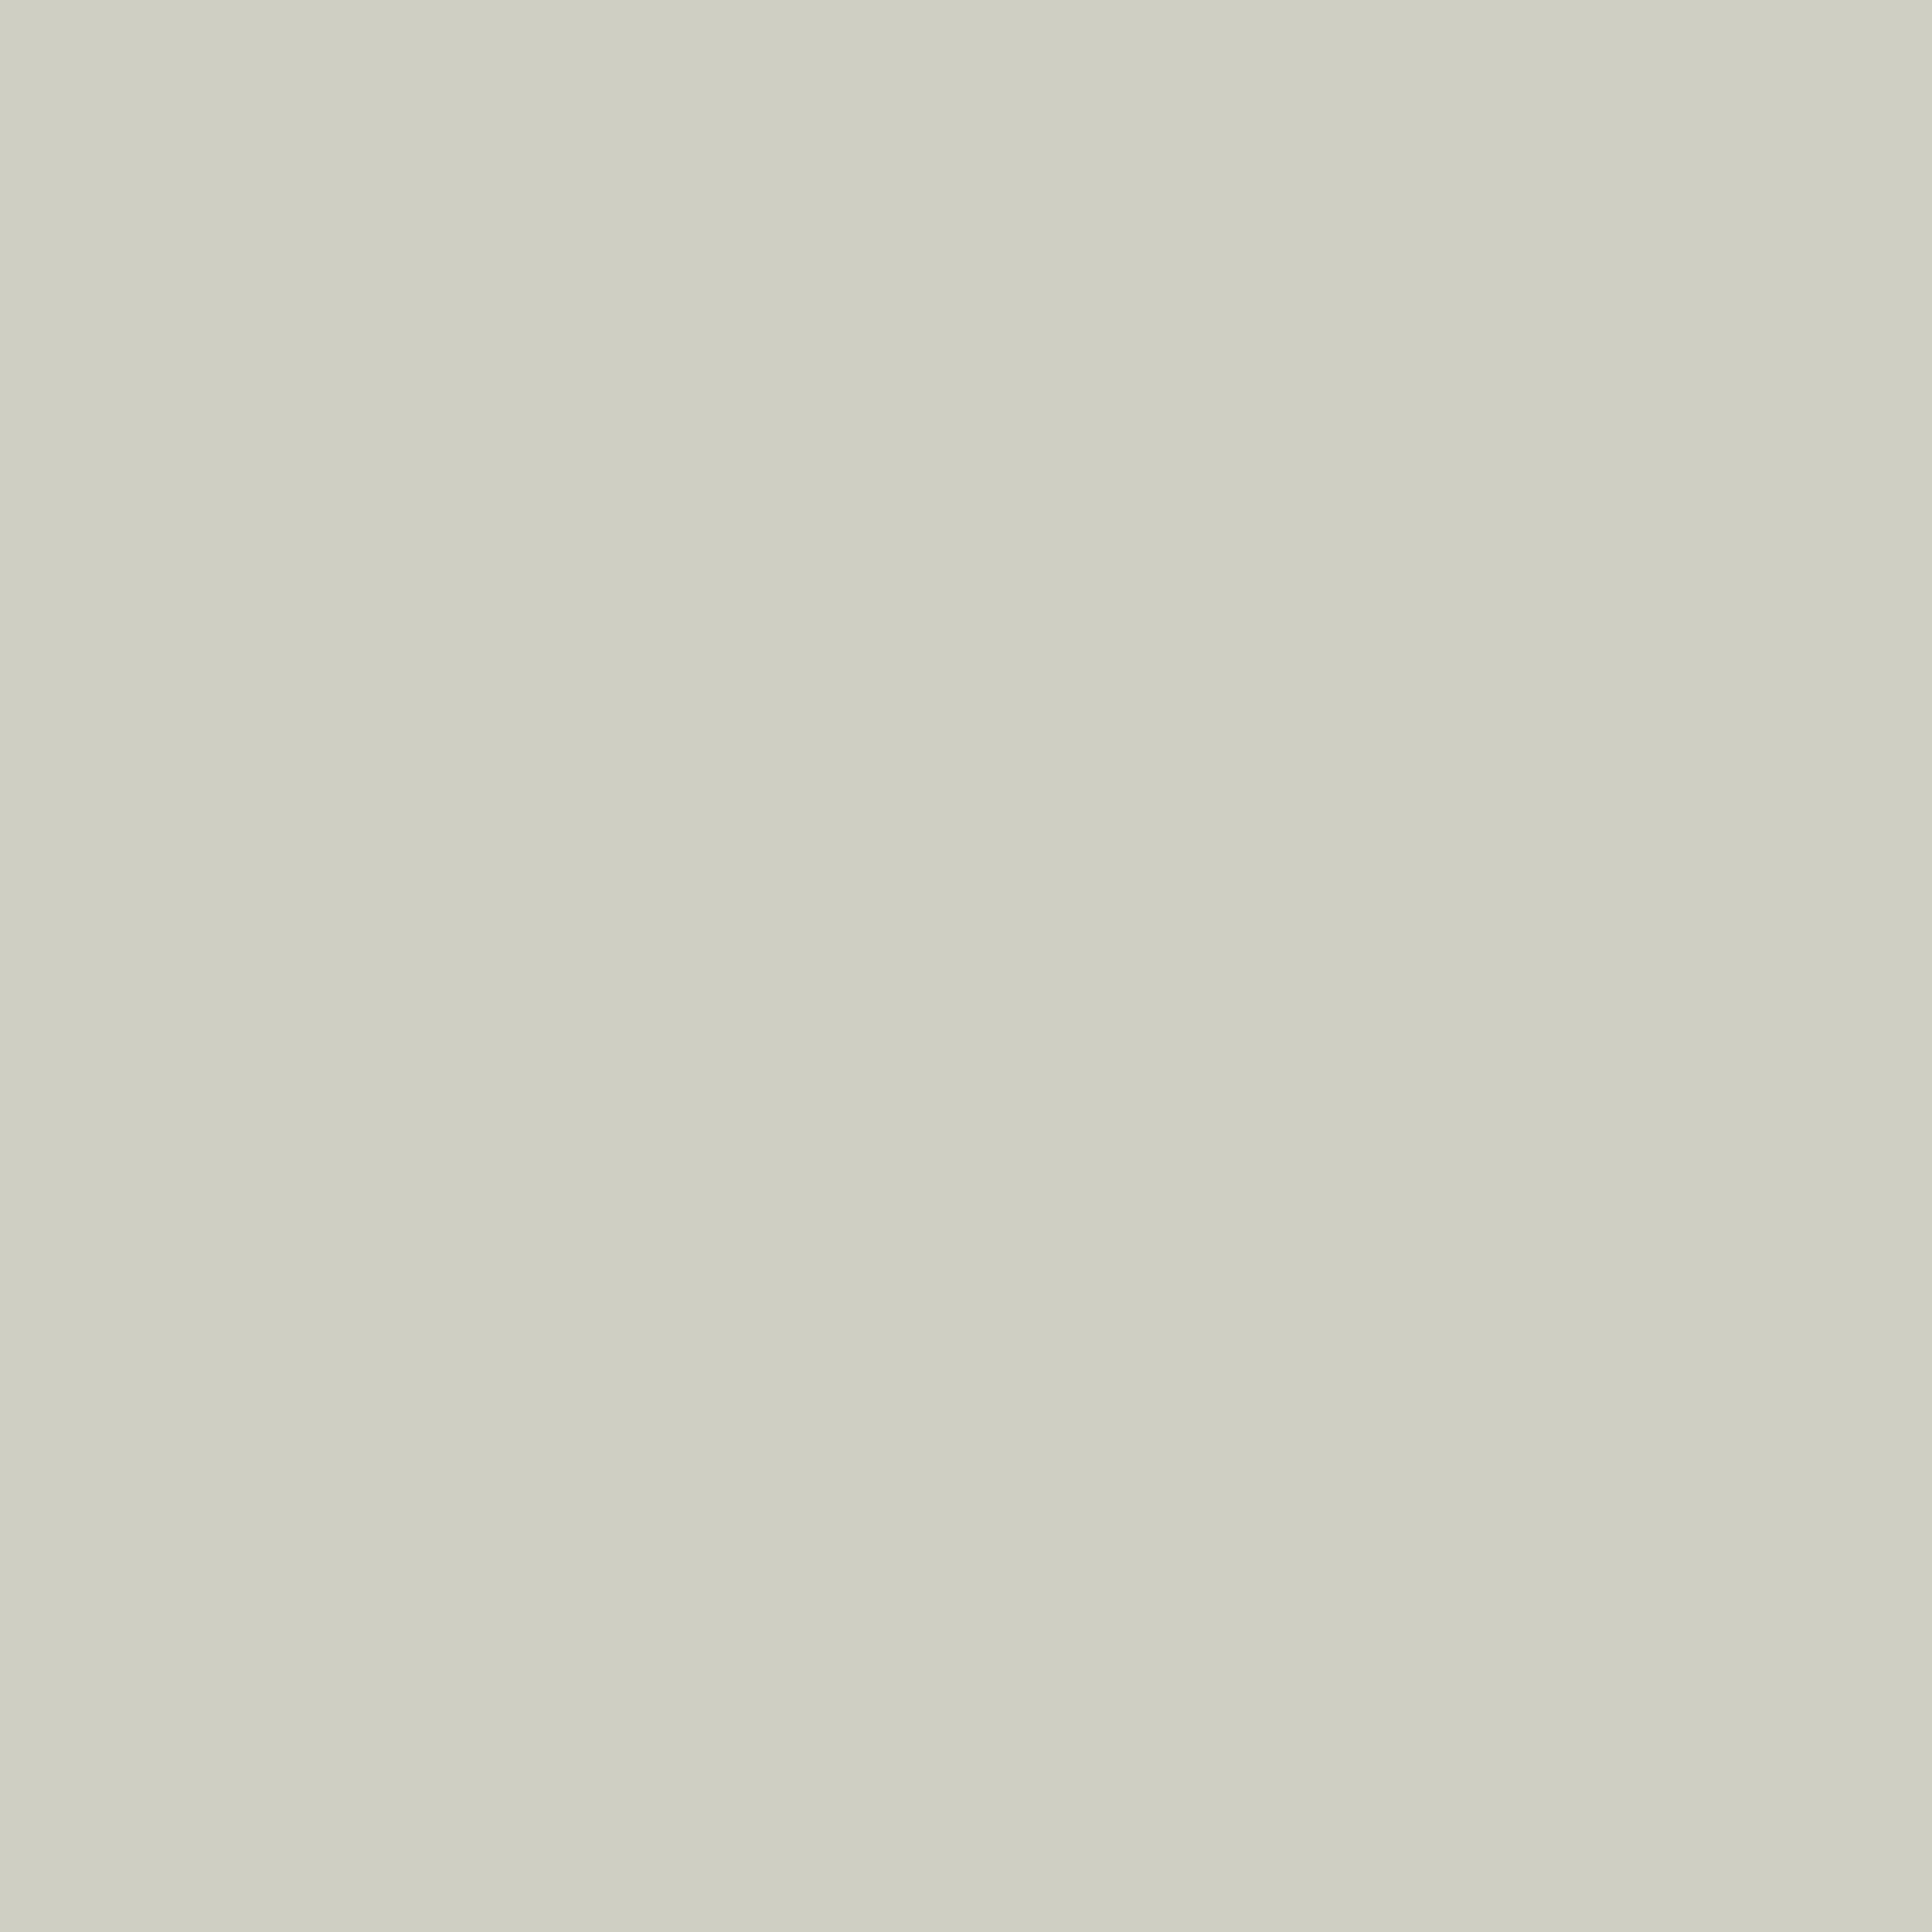 2048x2048 Pastel Gray Solid Color Background